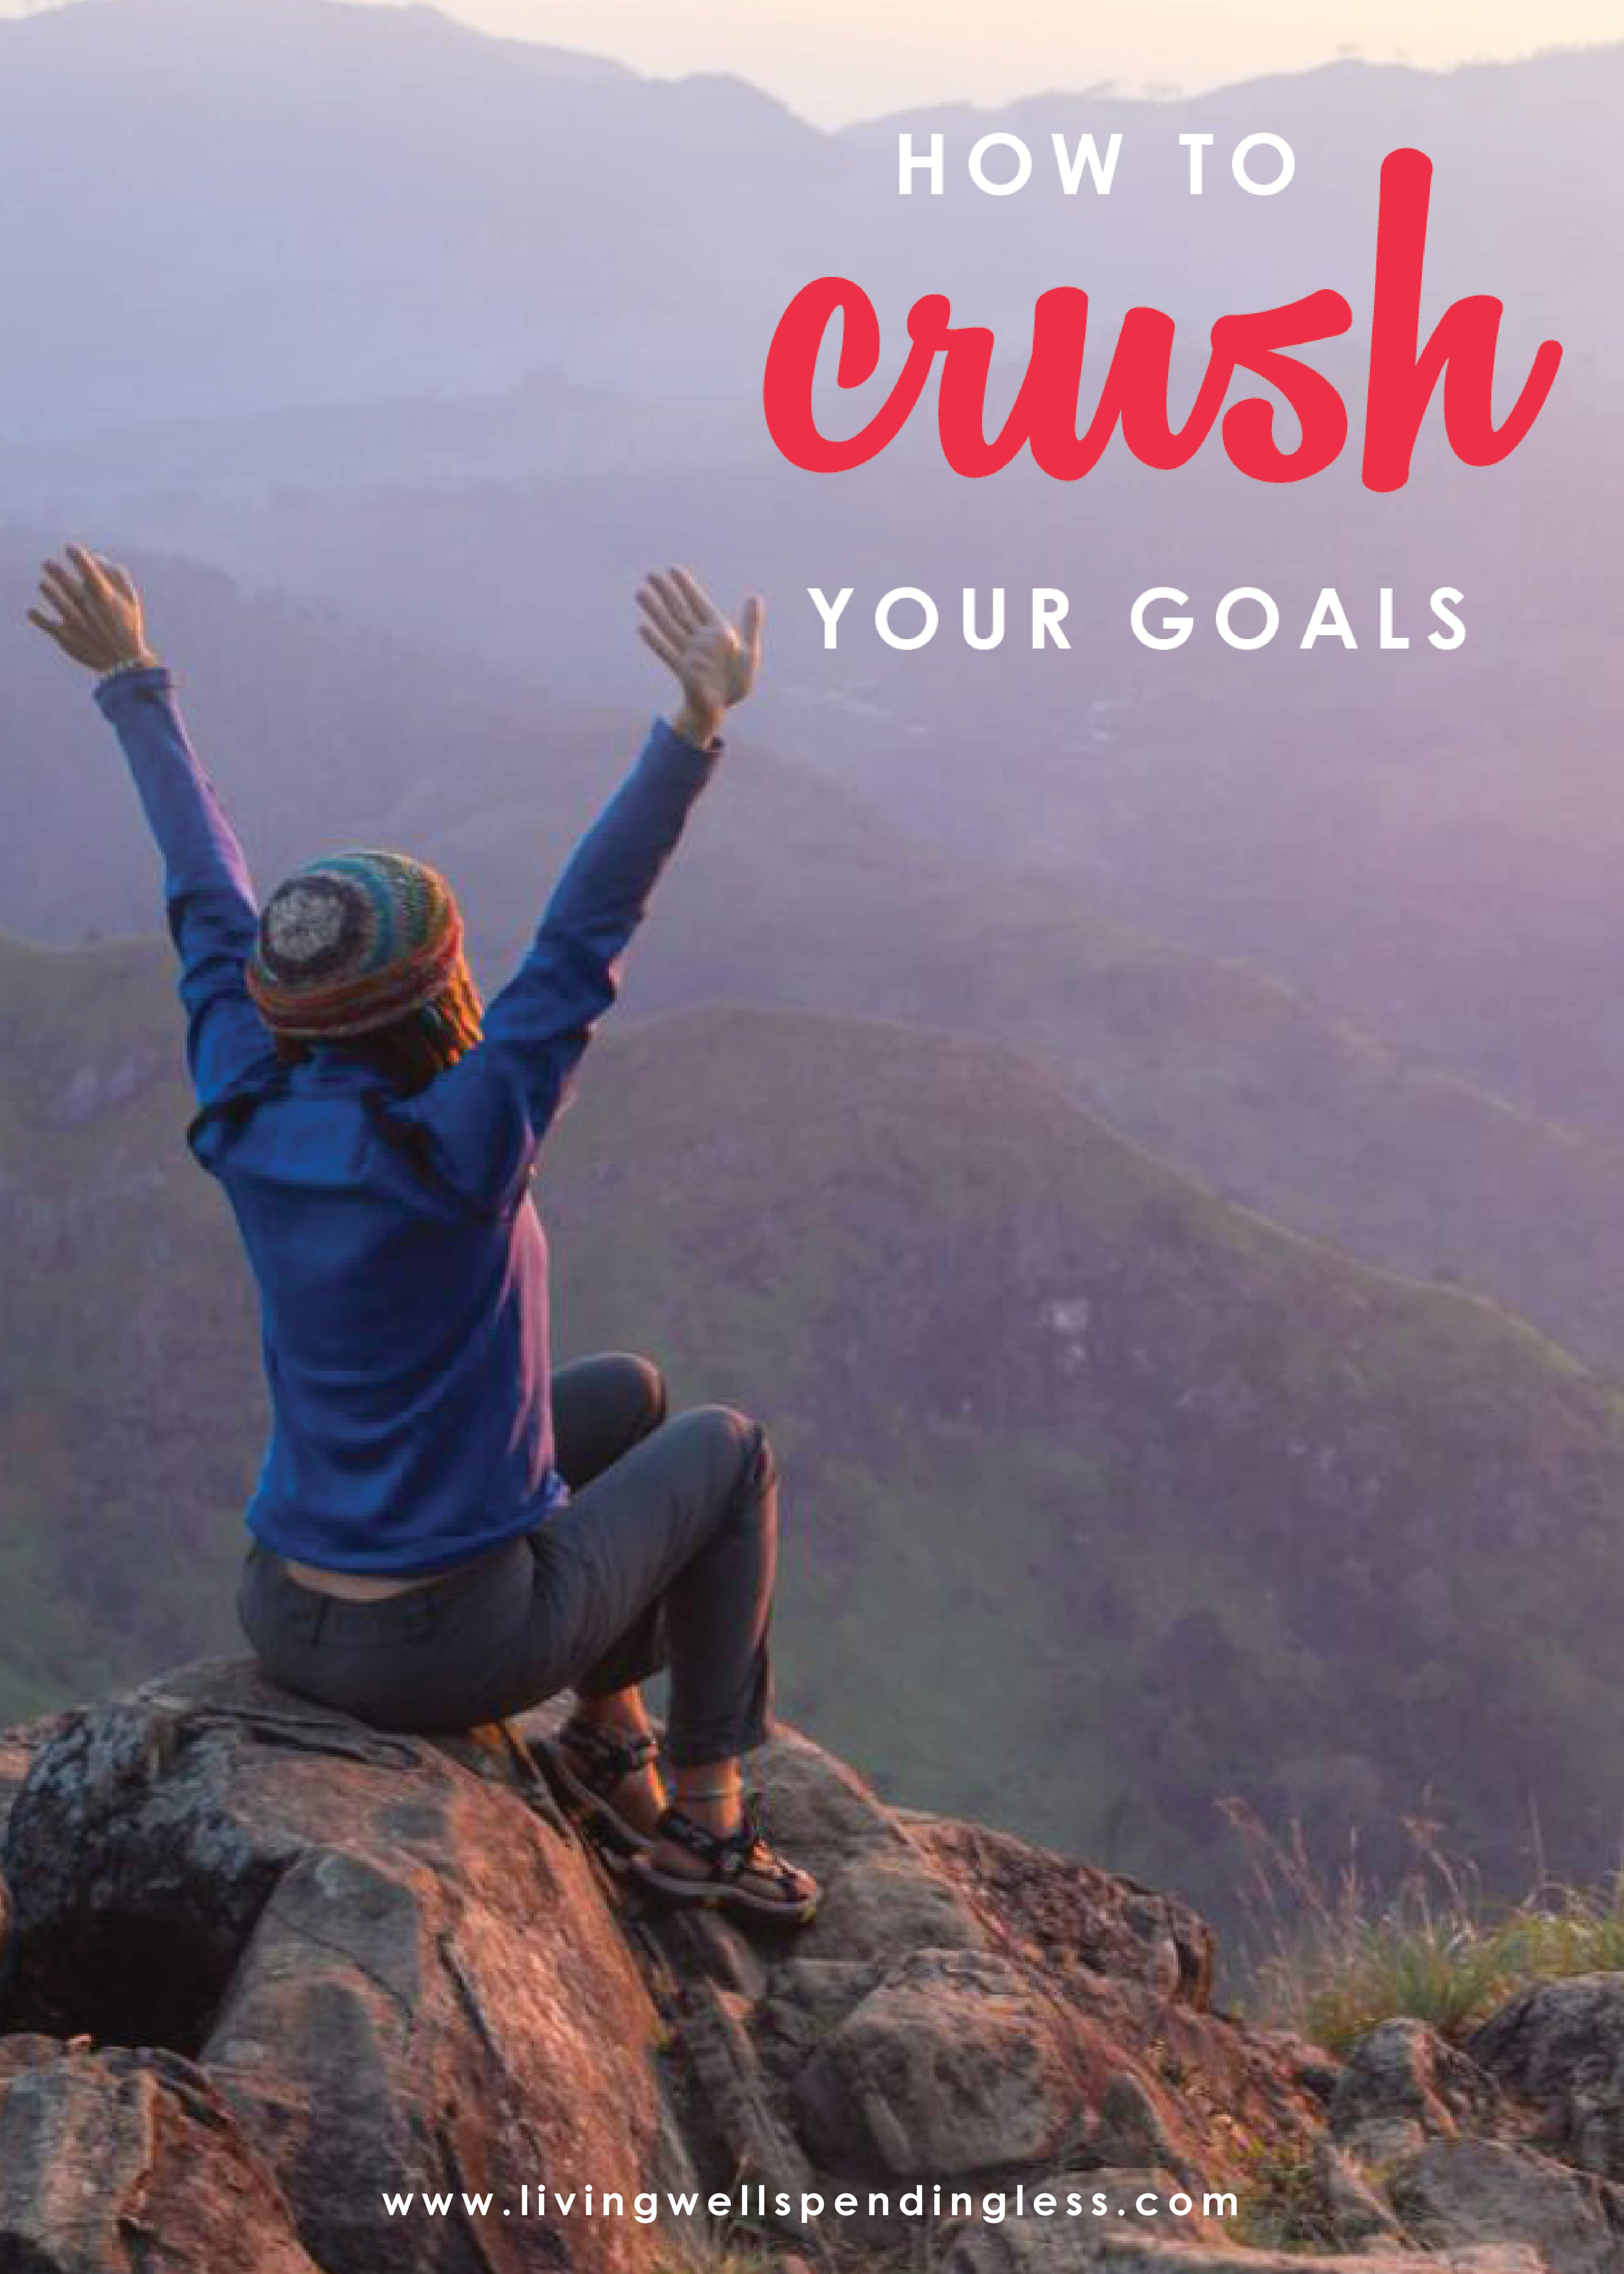 Let's face it—anybody can SET a goal, but actually ACHIEVING those goals can sometimes be a different story. Here's how to CRUSH your goals, every time.